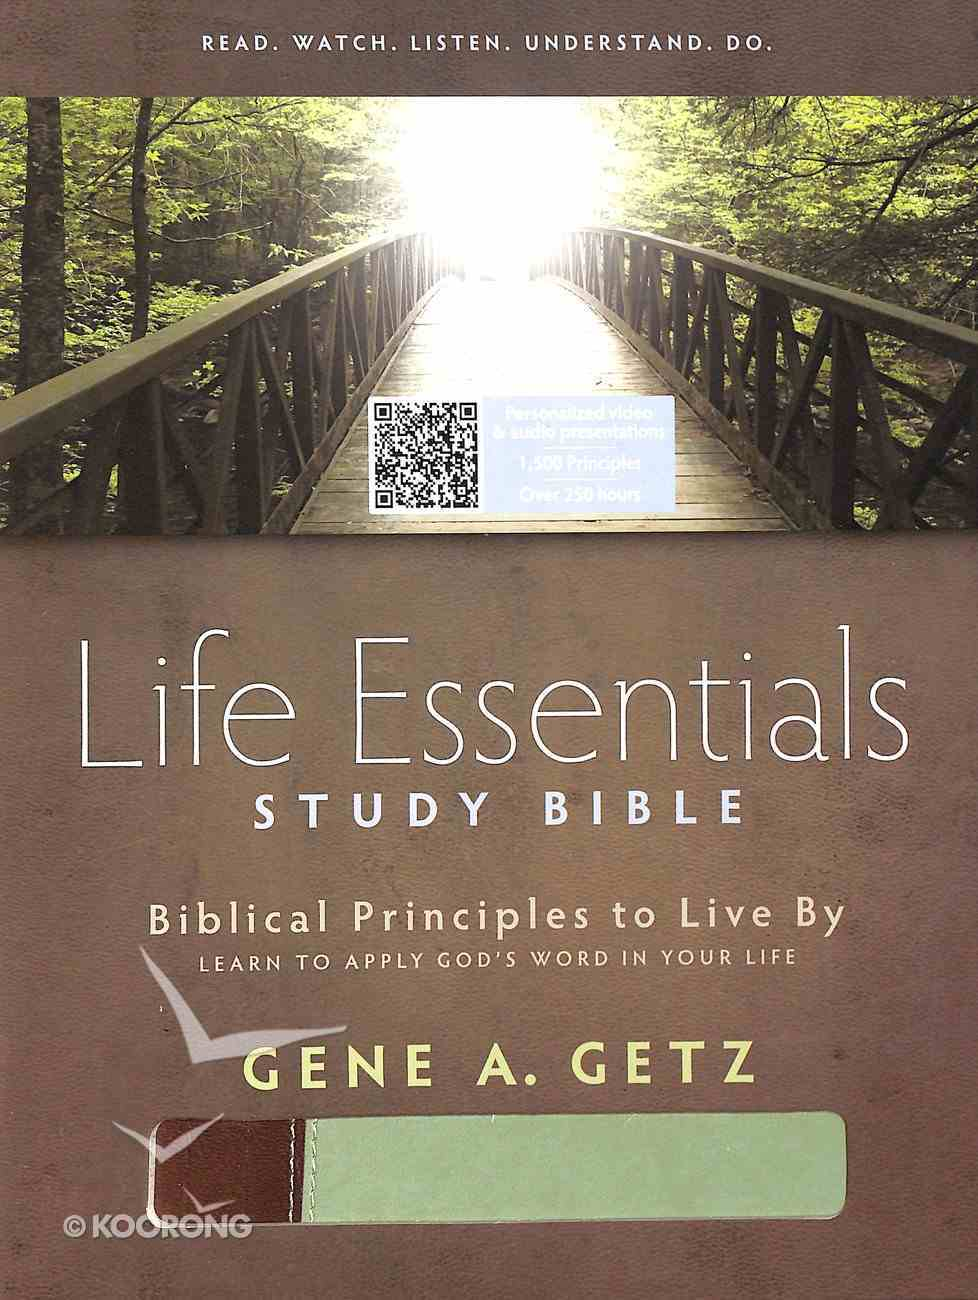 HCSB Life Essentials Study Bible Brown/Green Imitation Leather